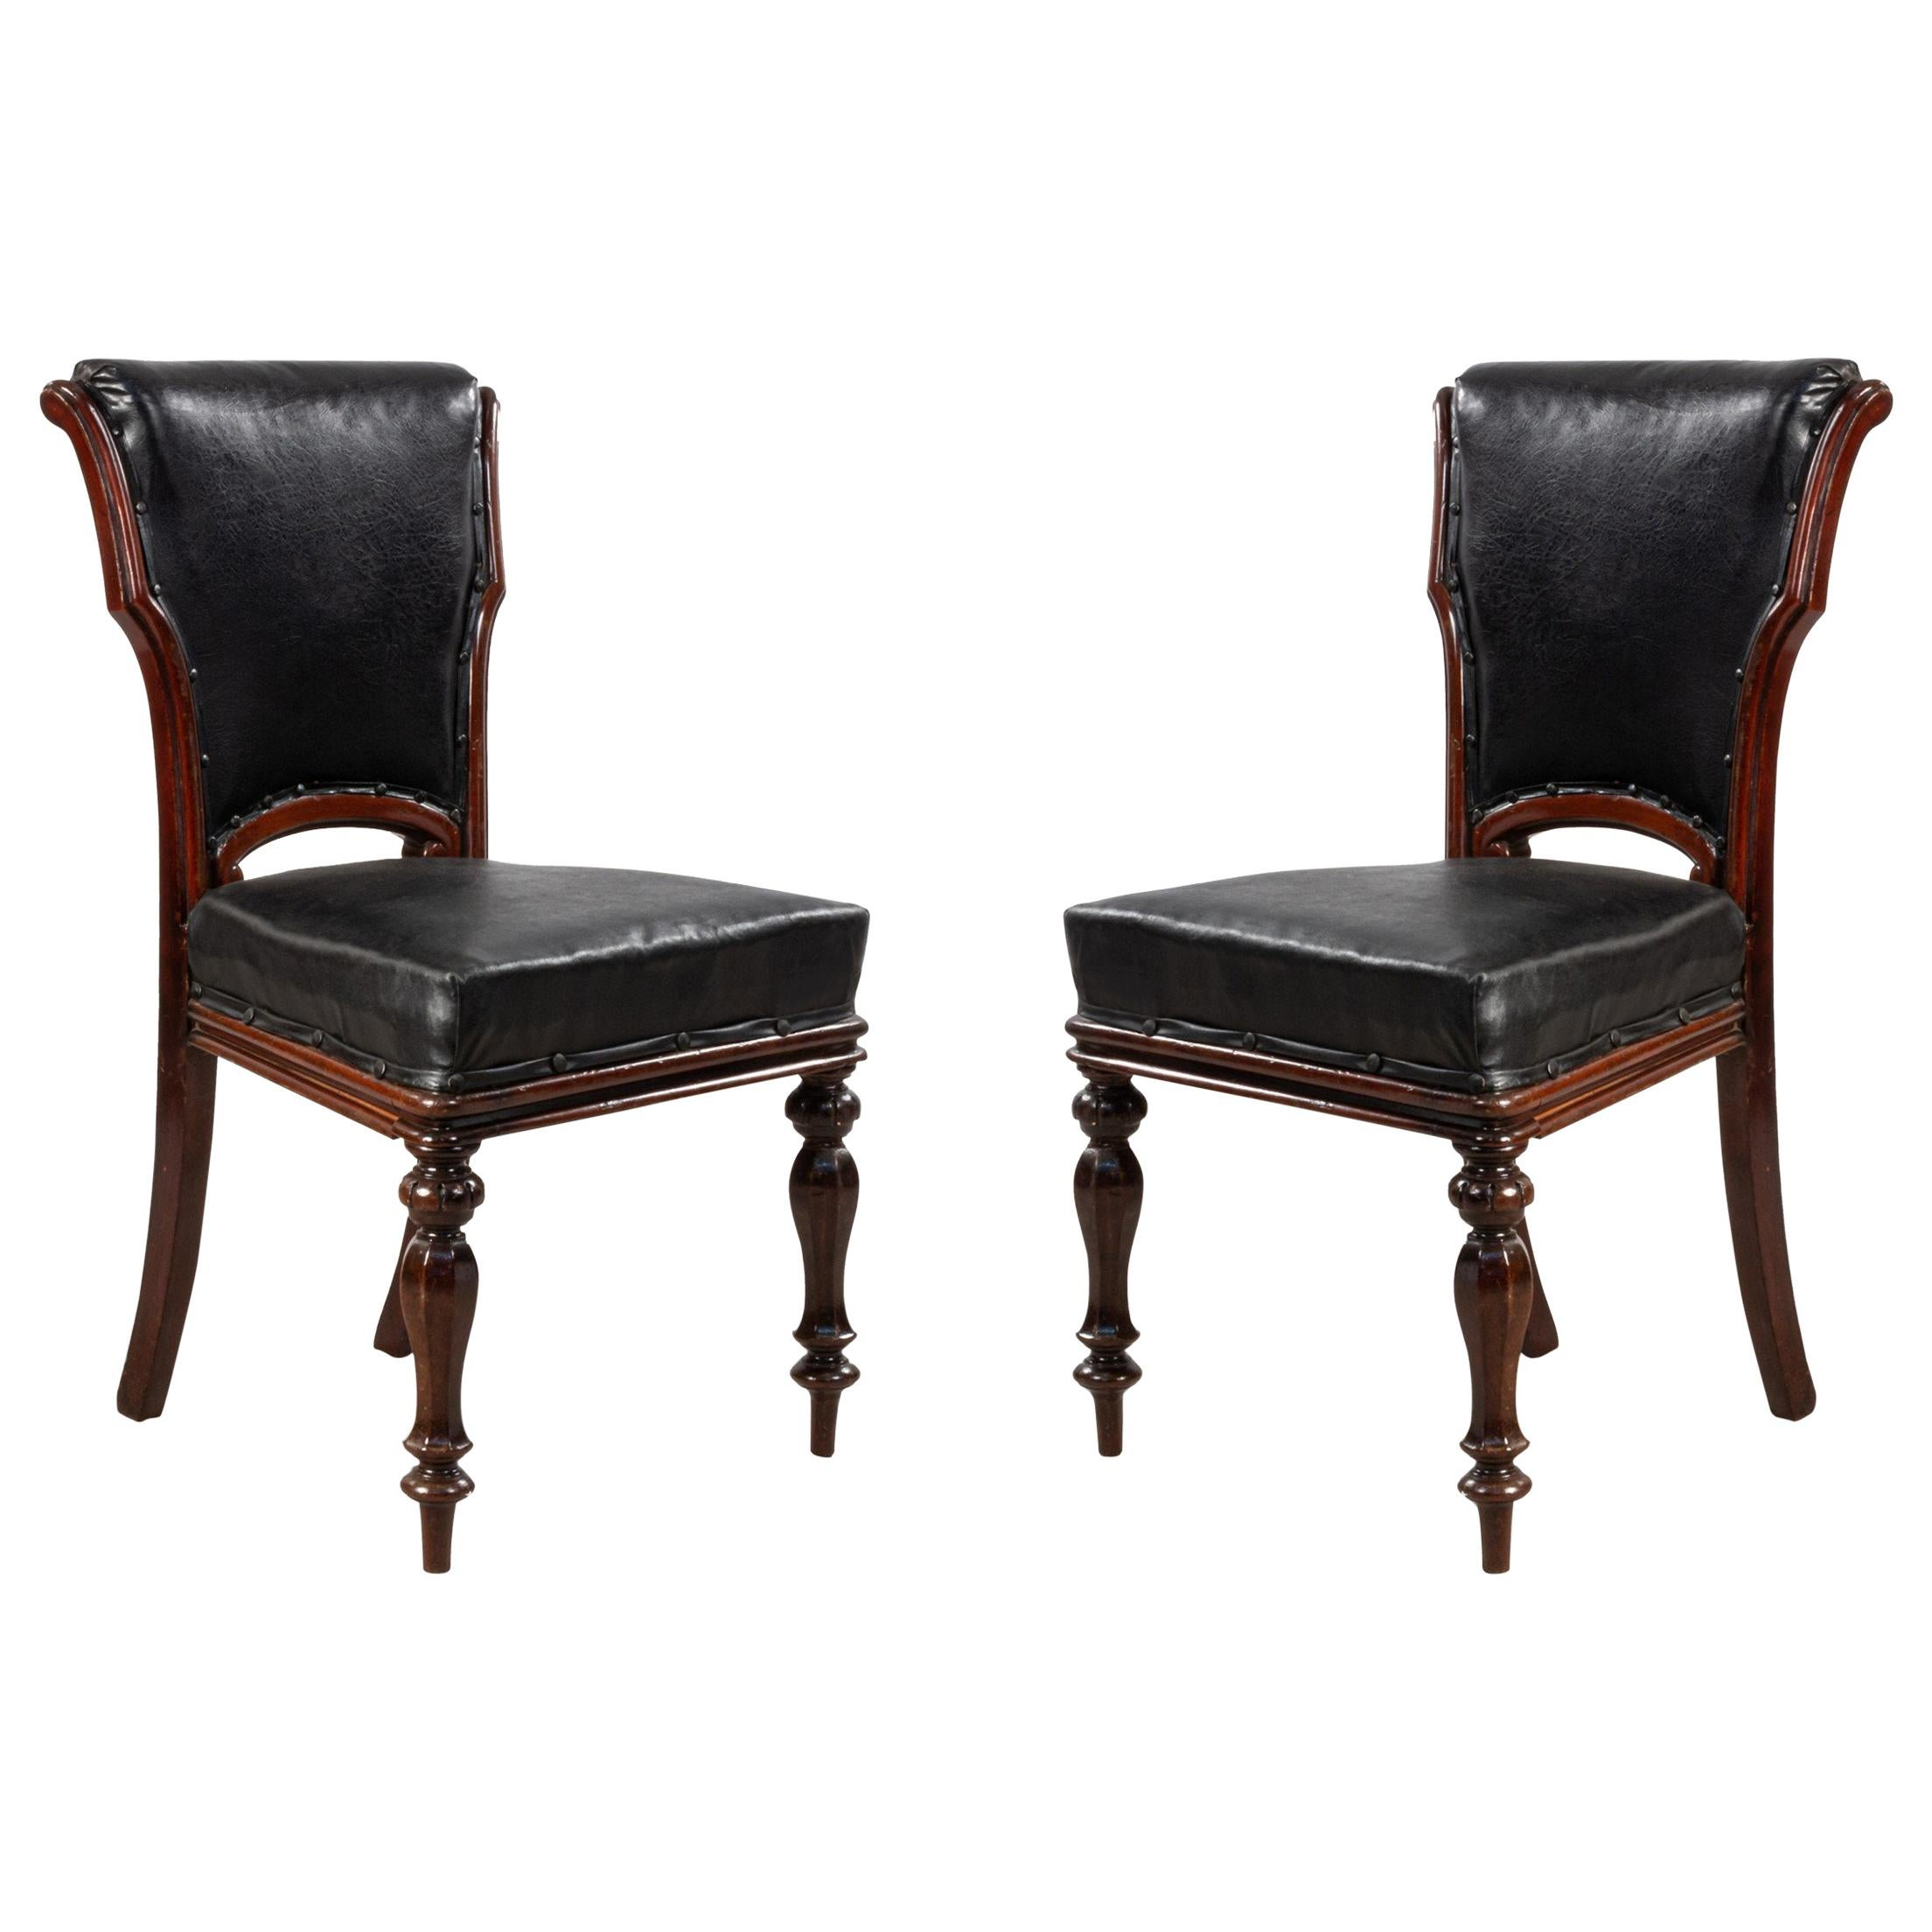 English William IV Style Walnut and Black Leather Dining Chairs